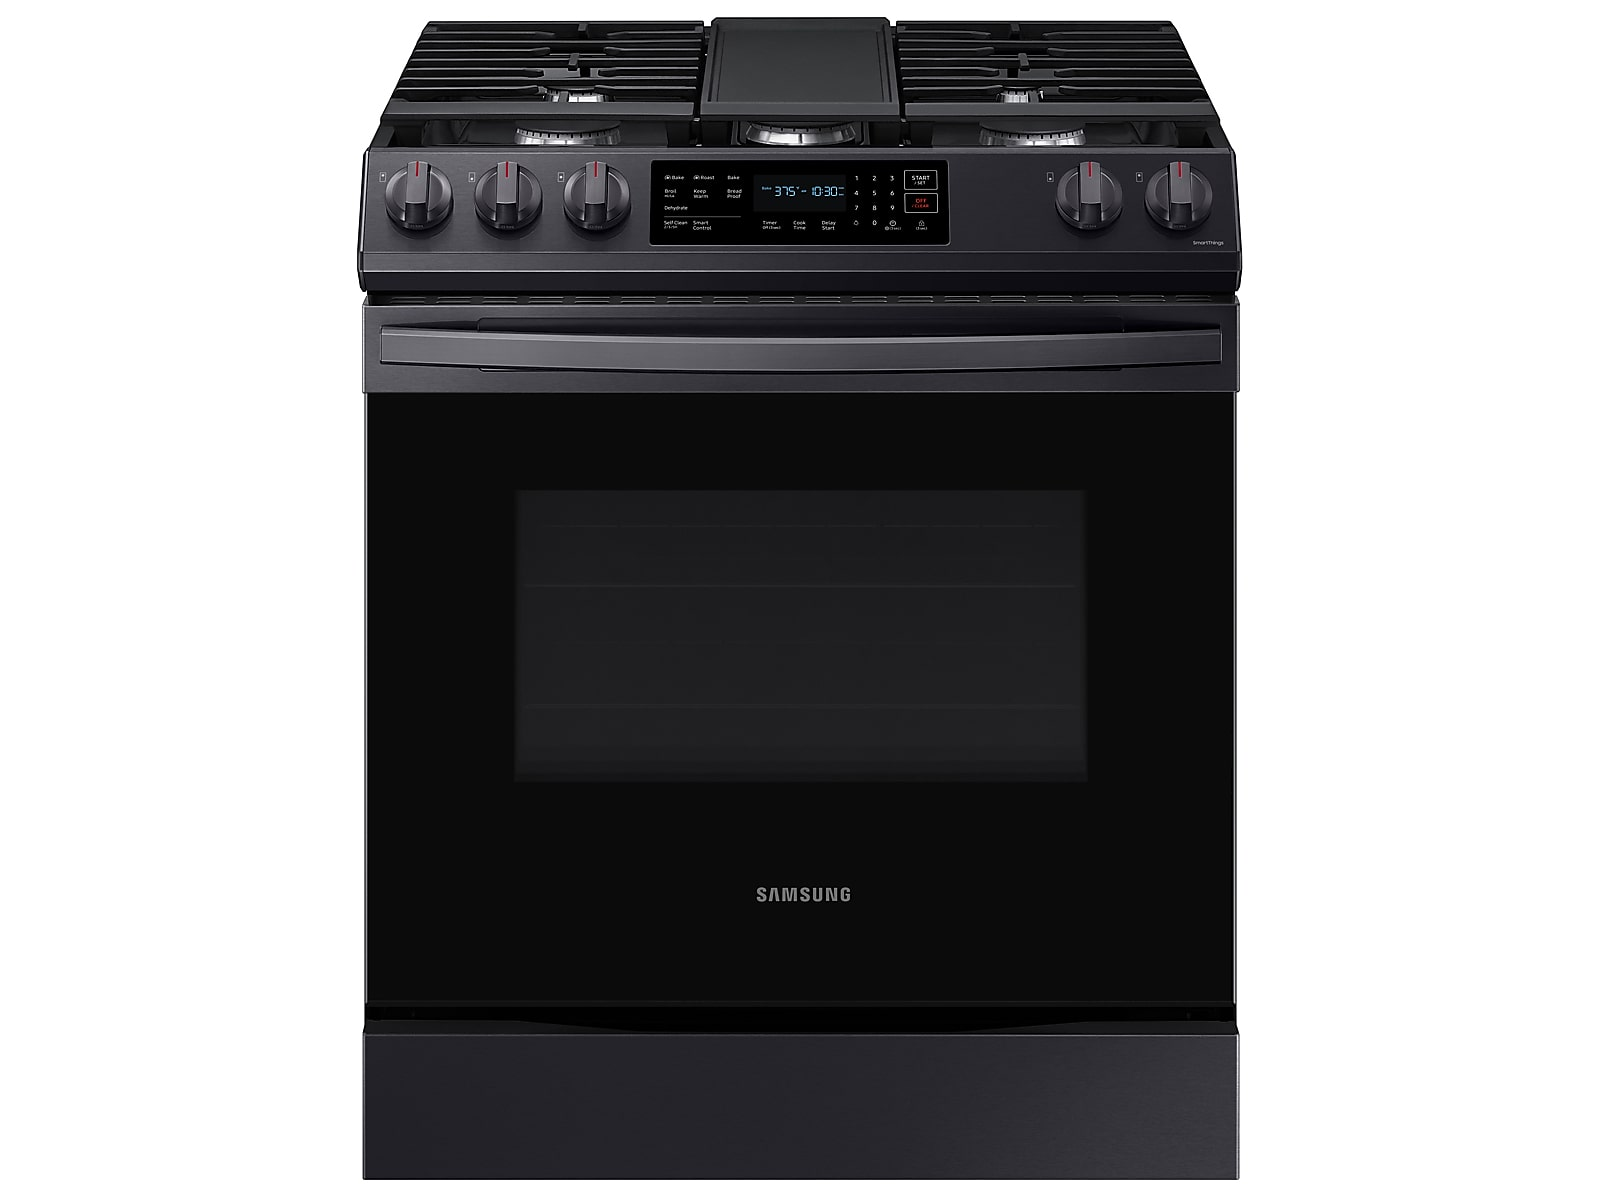 Samsung 6.0 cu. ft. Smart Slide-in Gas Range with Convection in Black Stainless Steel(NX60T8311SG/AA)